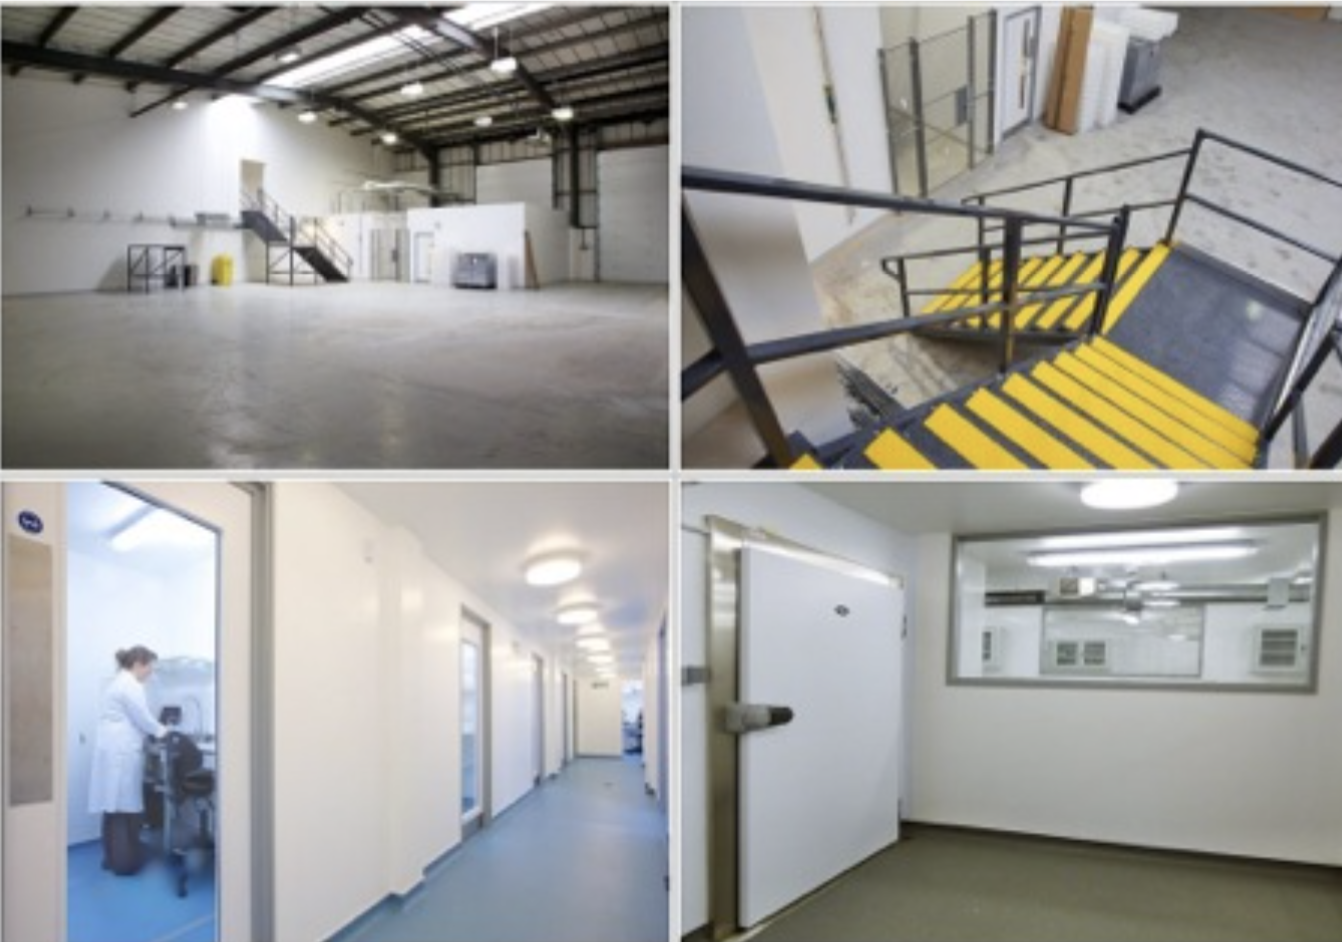 A Warehouse to Laboratory conversion on two floors via mezzanine floor installation.